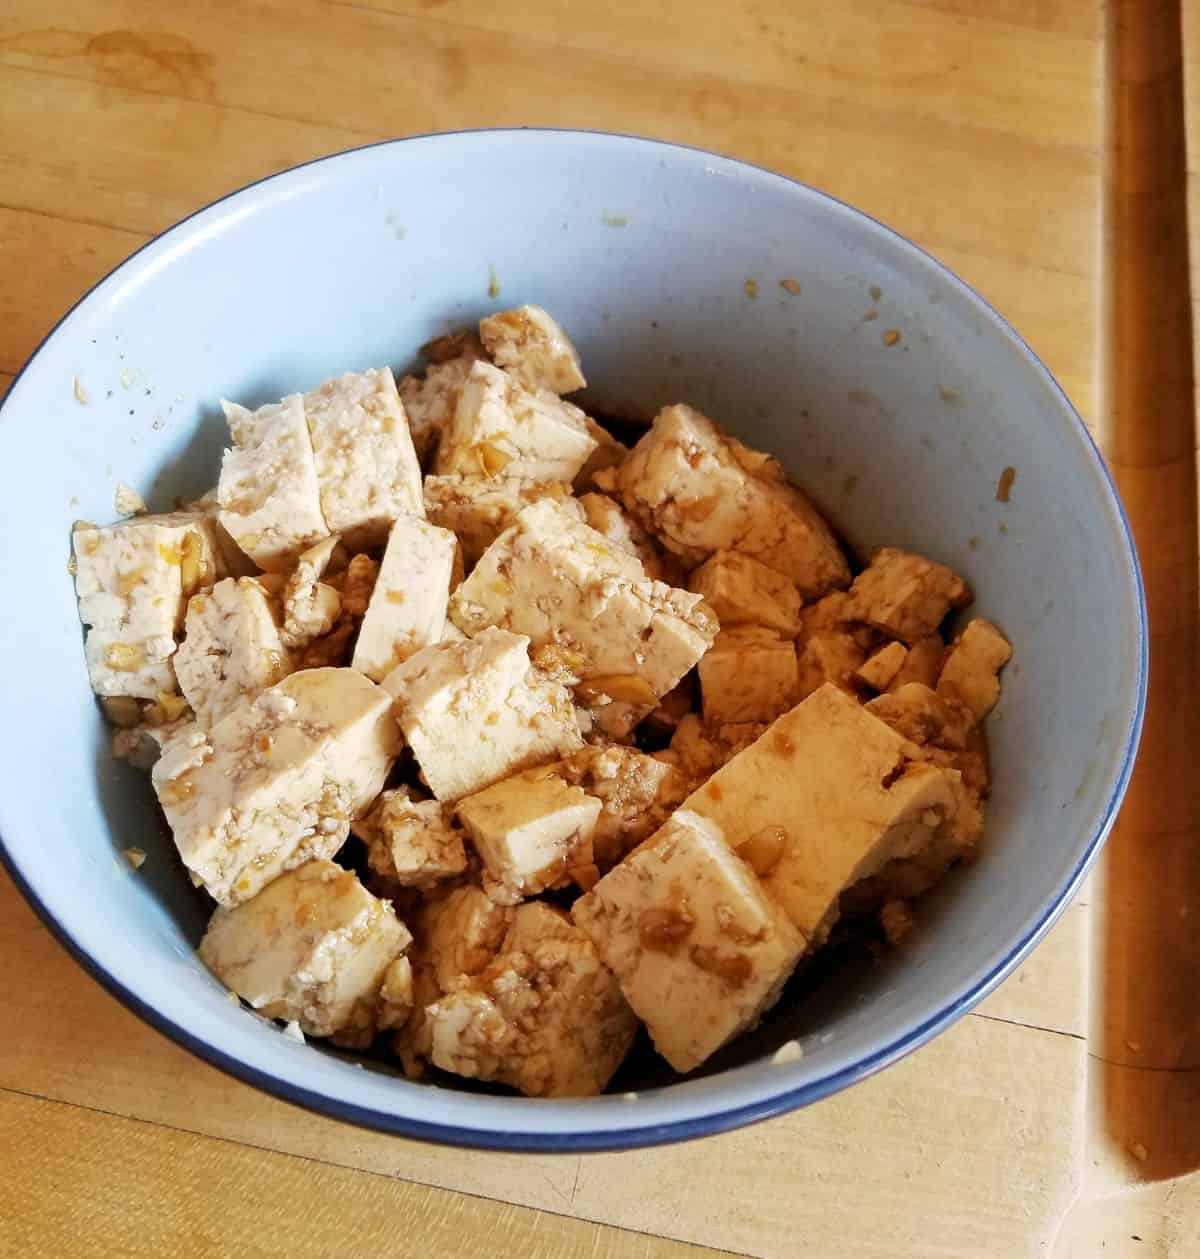 Cubed tofu marinating in sesame ginger soy sauce in small white bowl.